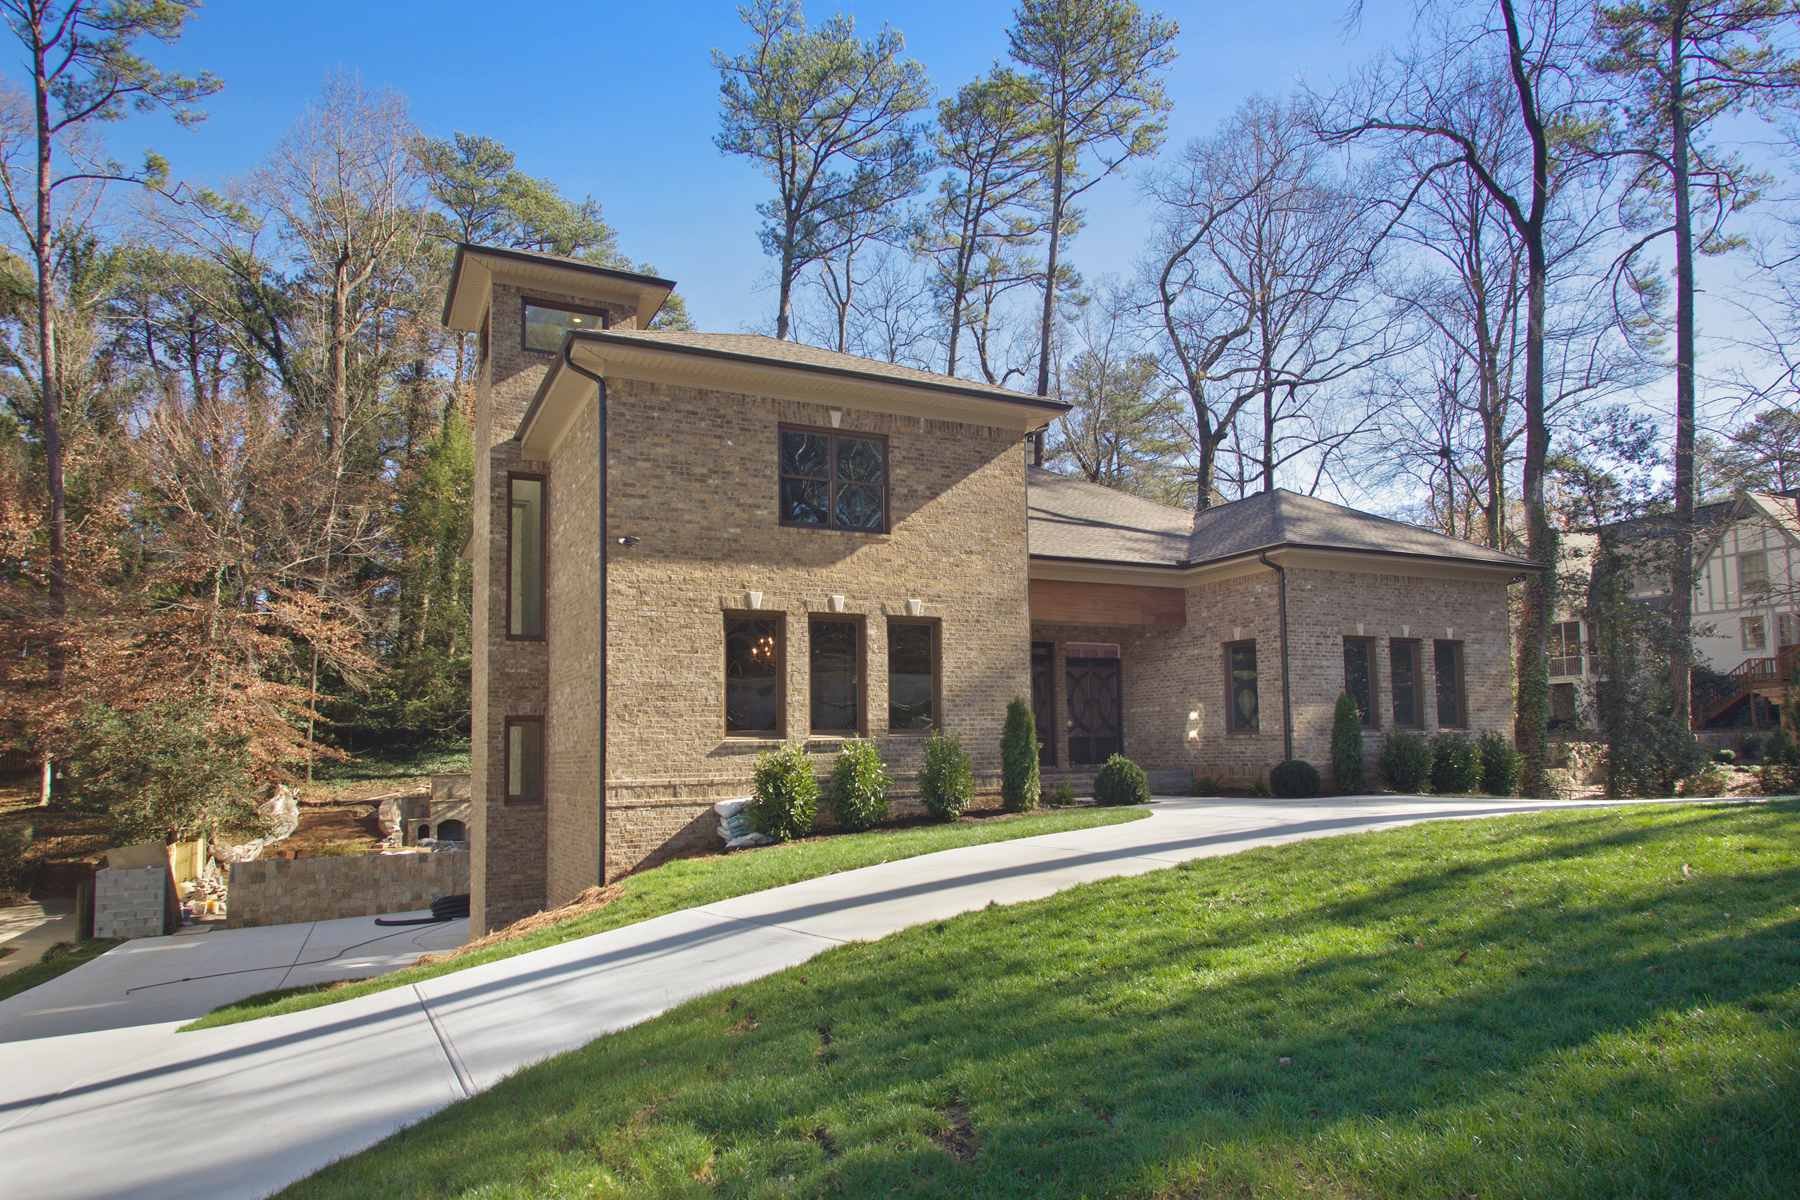 Moradia para Venda às Sprawling New Home In Morningside With Resort-style Backyard 1801 Wellbourne Drive NE Morningside, Atlanta, Geórgia 30324 Estados Unidos